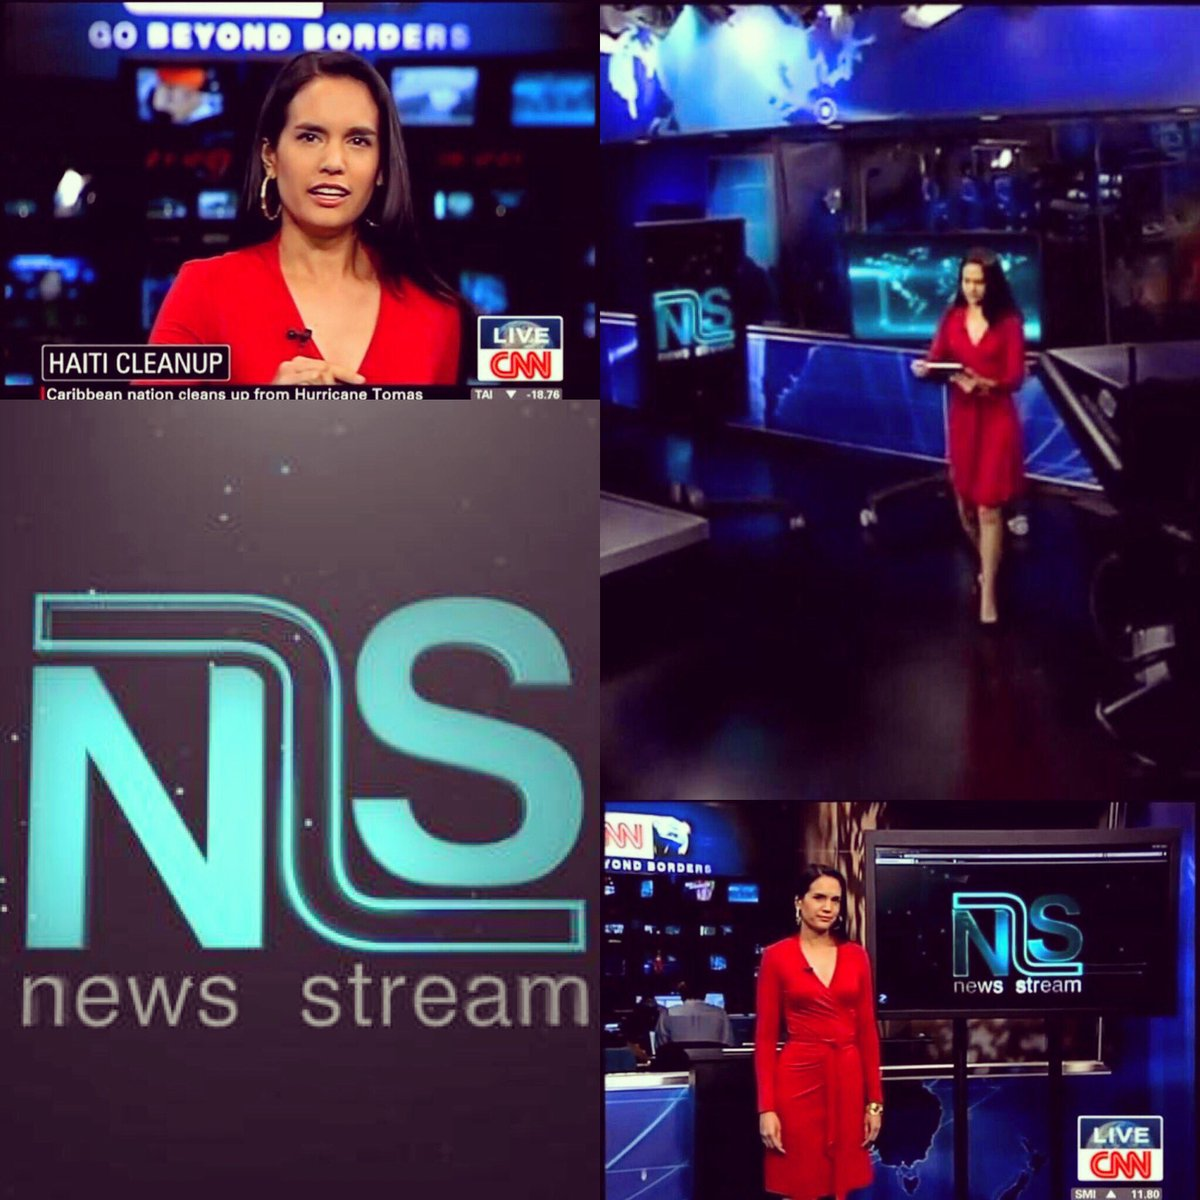 Kristie Lu Stout On Twitter 8 Years Of News Stream 8 Years The Very First Show Aired On November 8 2010 I Wore My Lucky Red Dress Wherever In The World